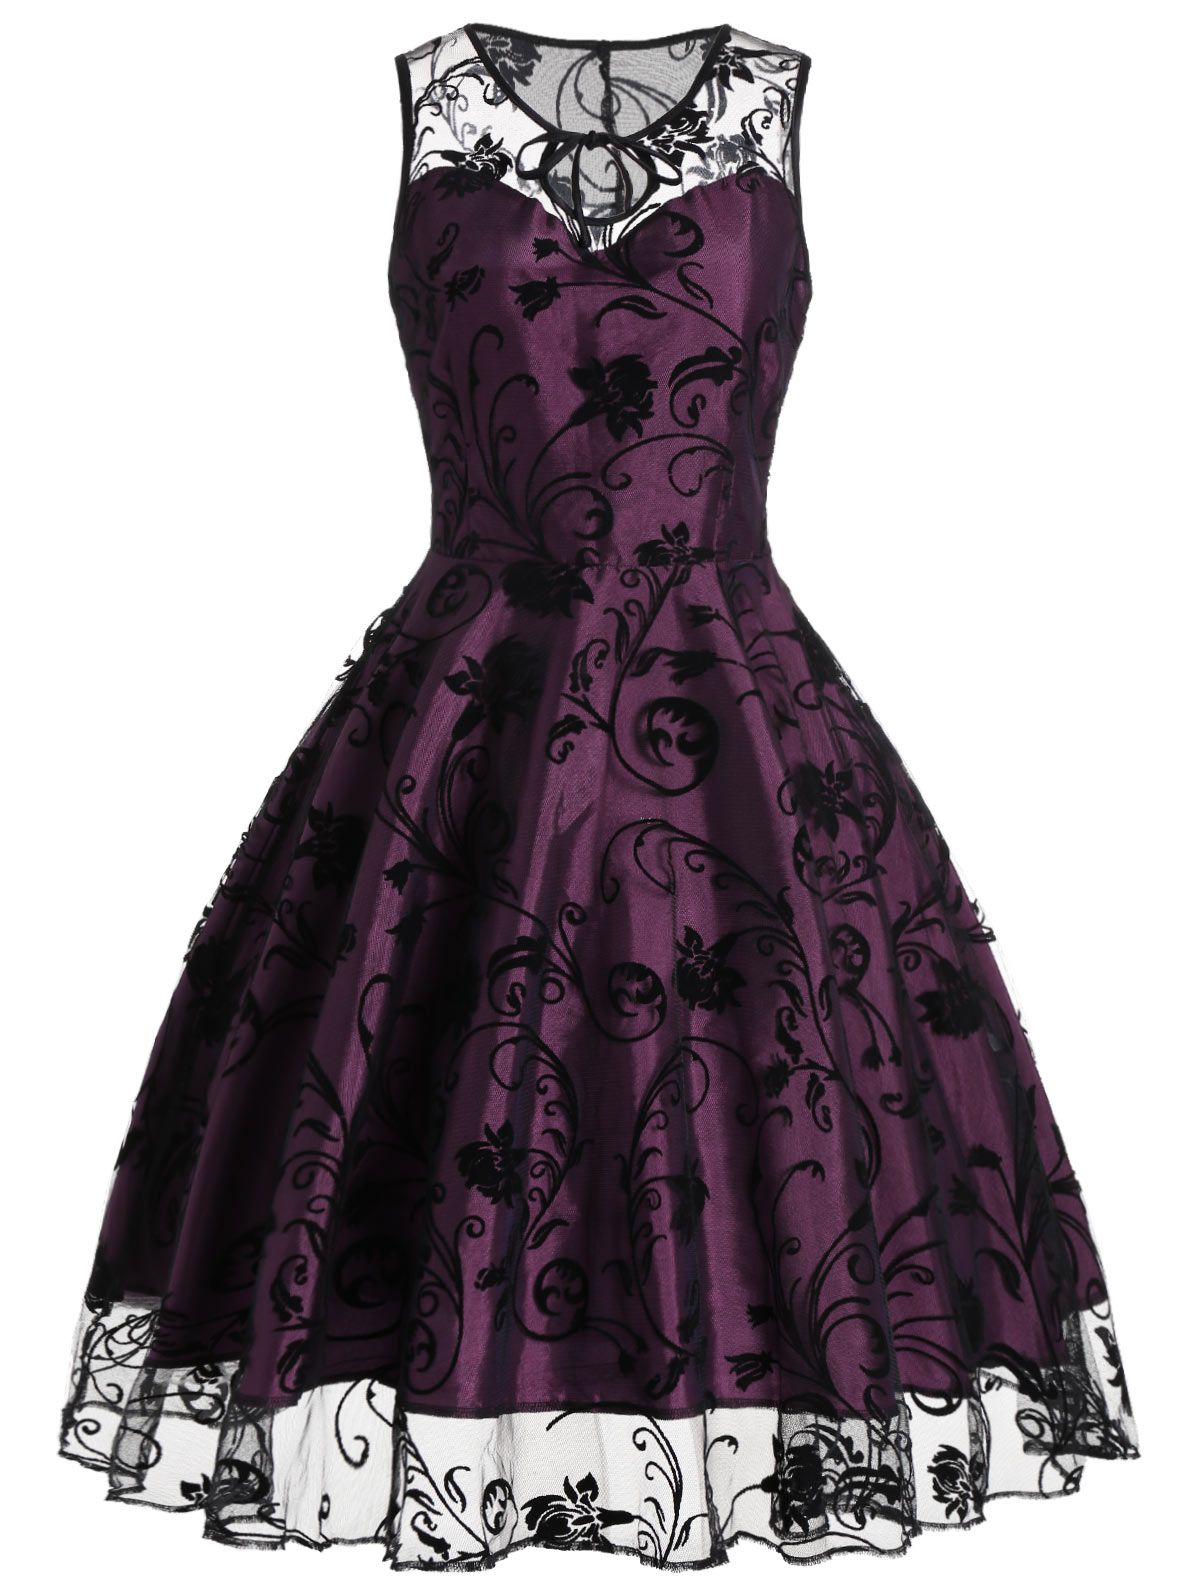 Homecoming Floral Tulle Tea Length Sleeveless Vintage Dress ...